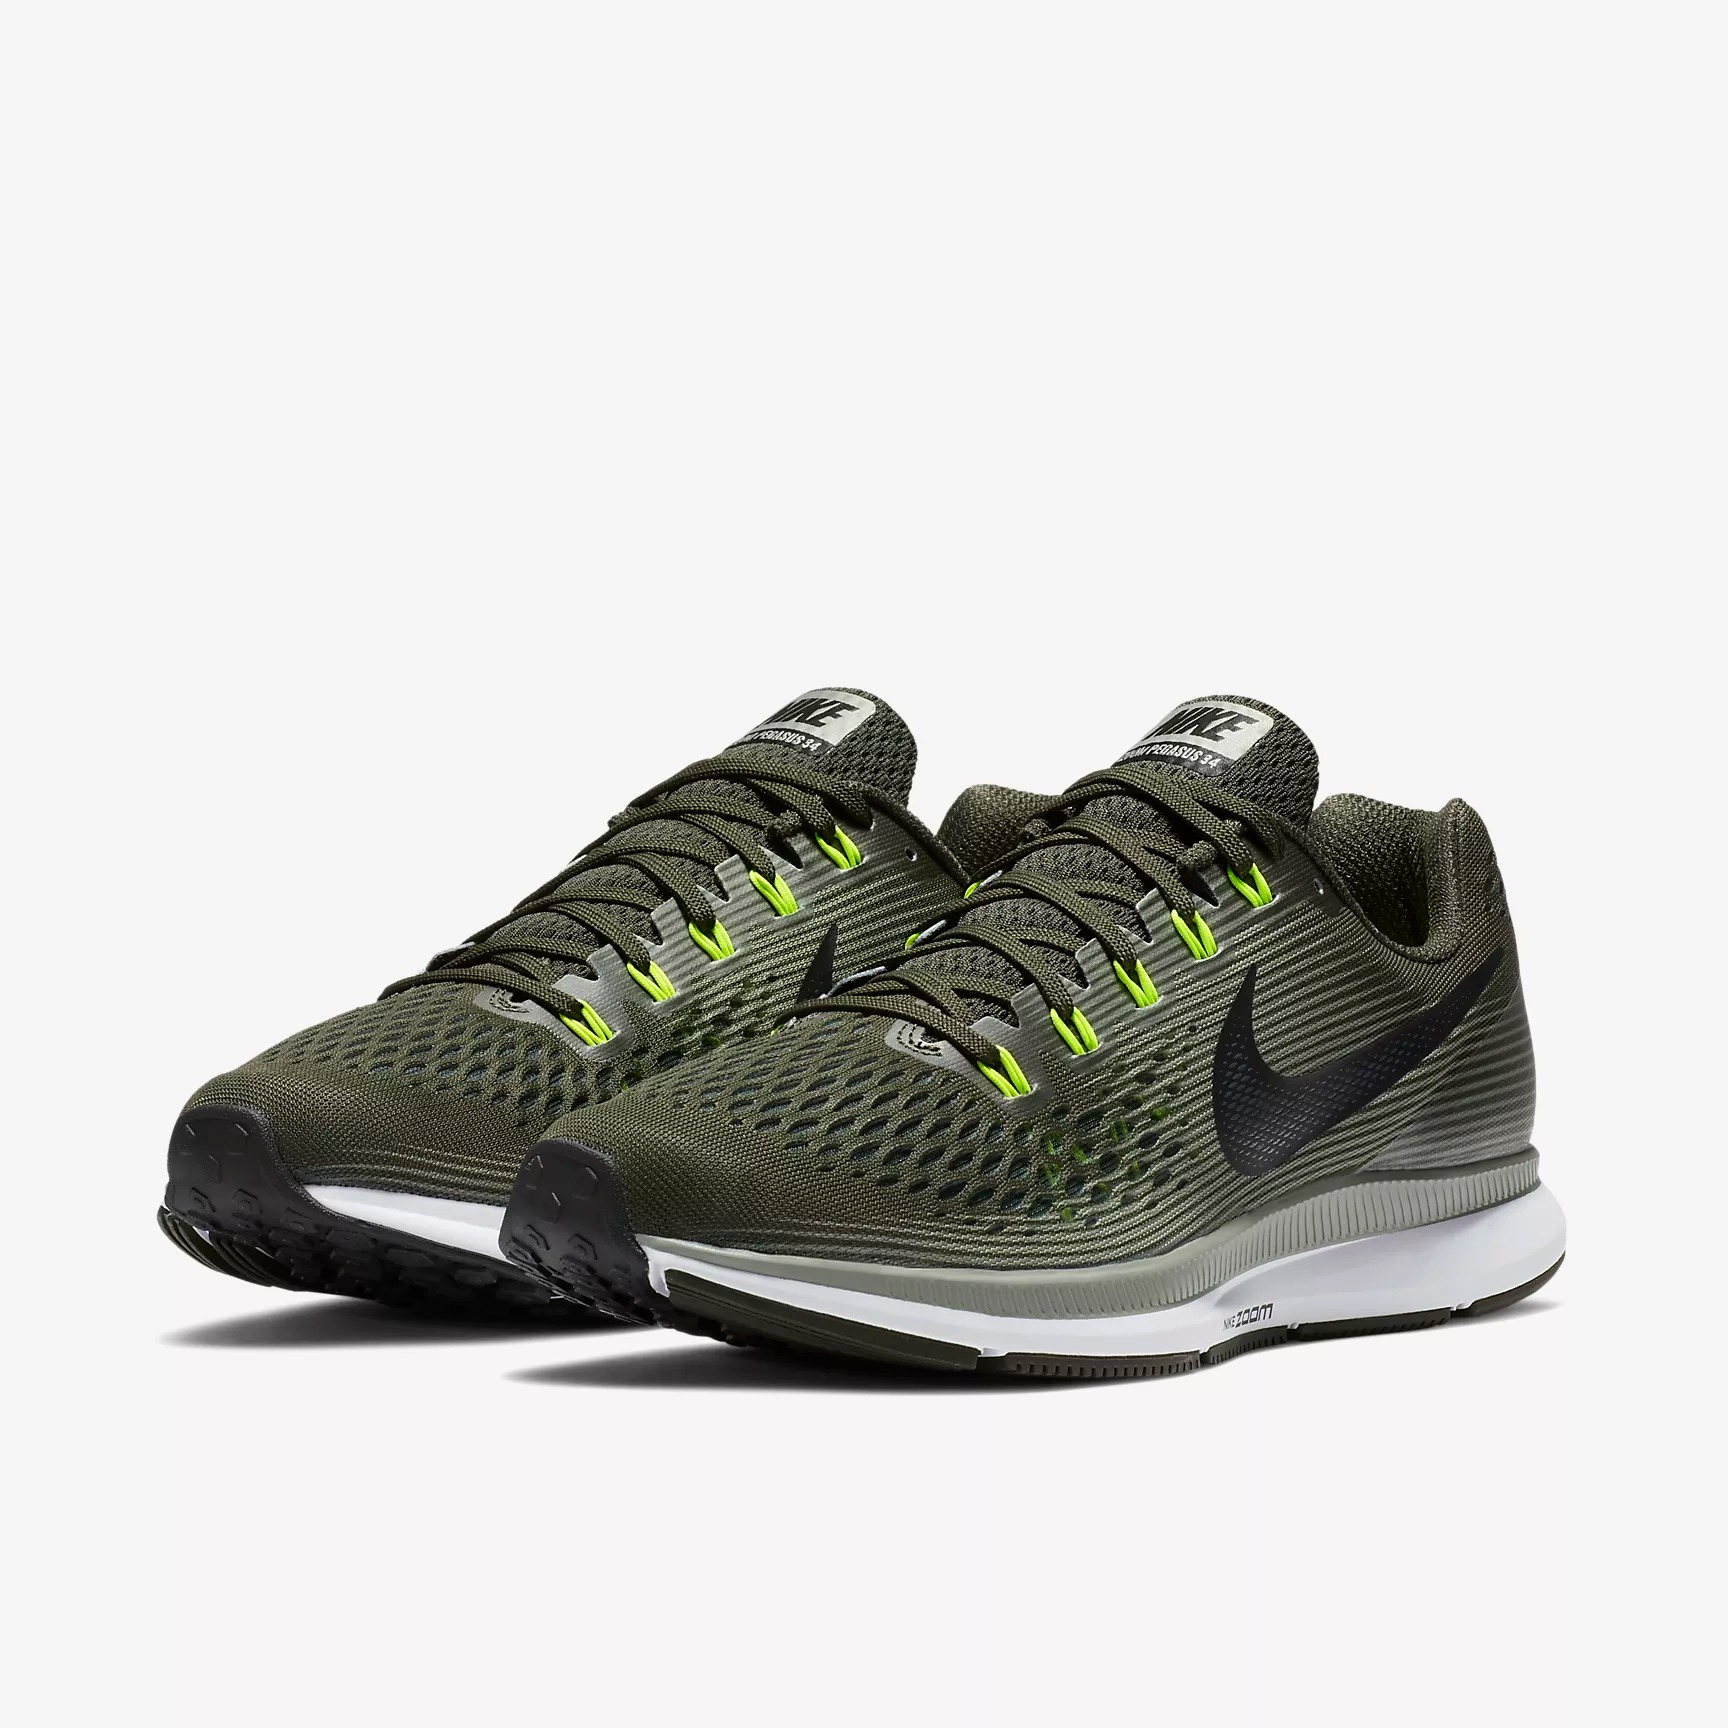 271f9d9546ee9 Nike Air Zoom Pegasus 34 Running Shoes - SPORT SHOES RUNNING SHOES -  Superfanas.lt